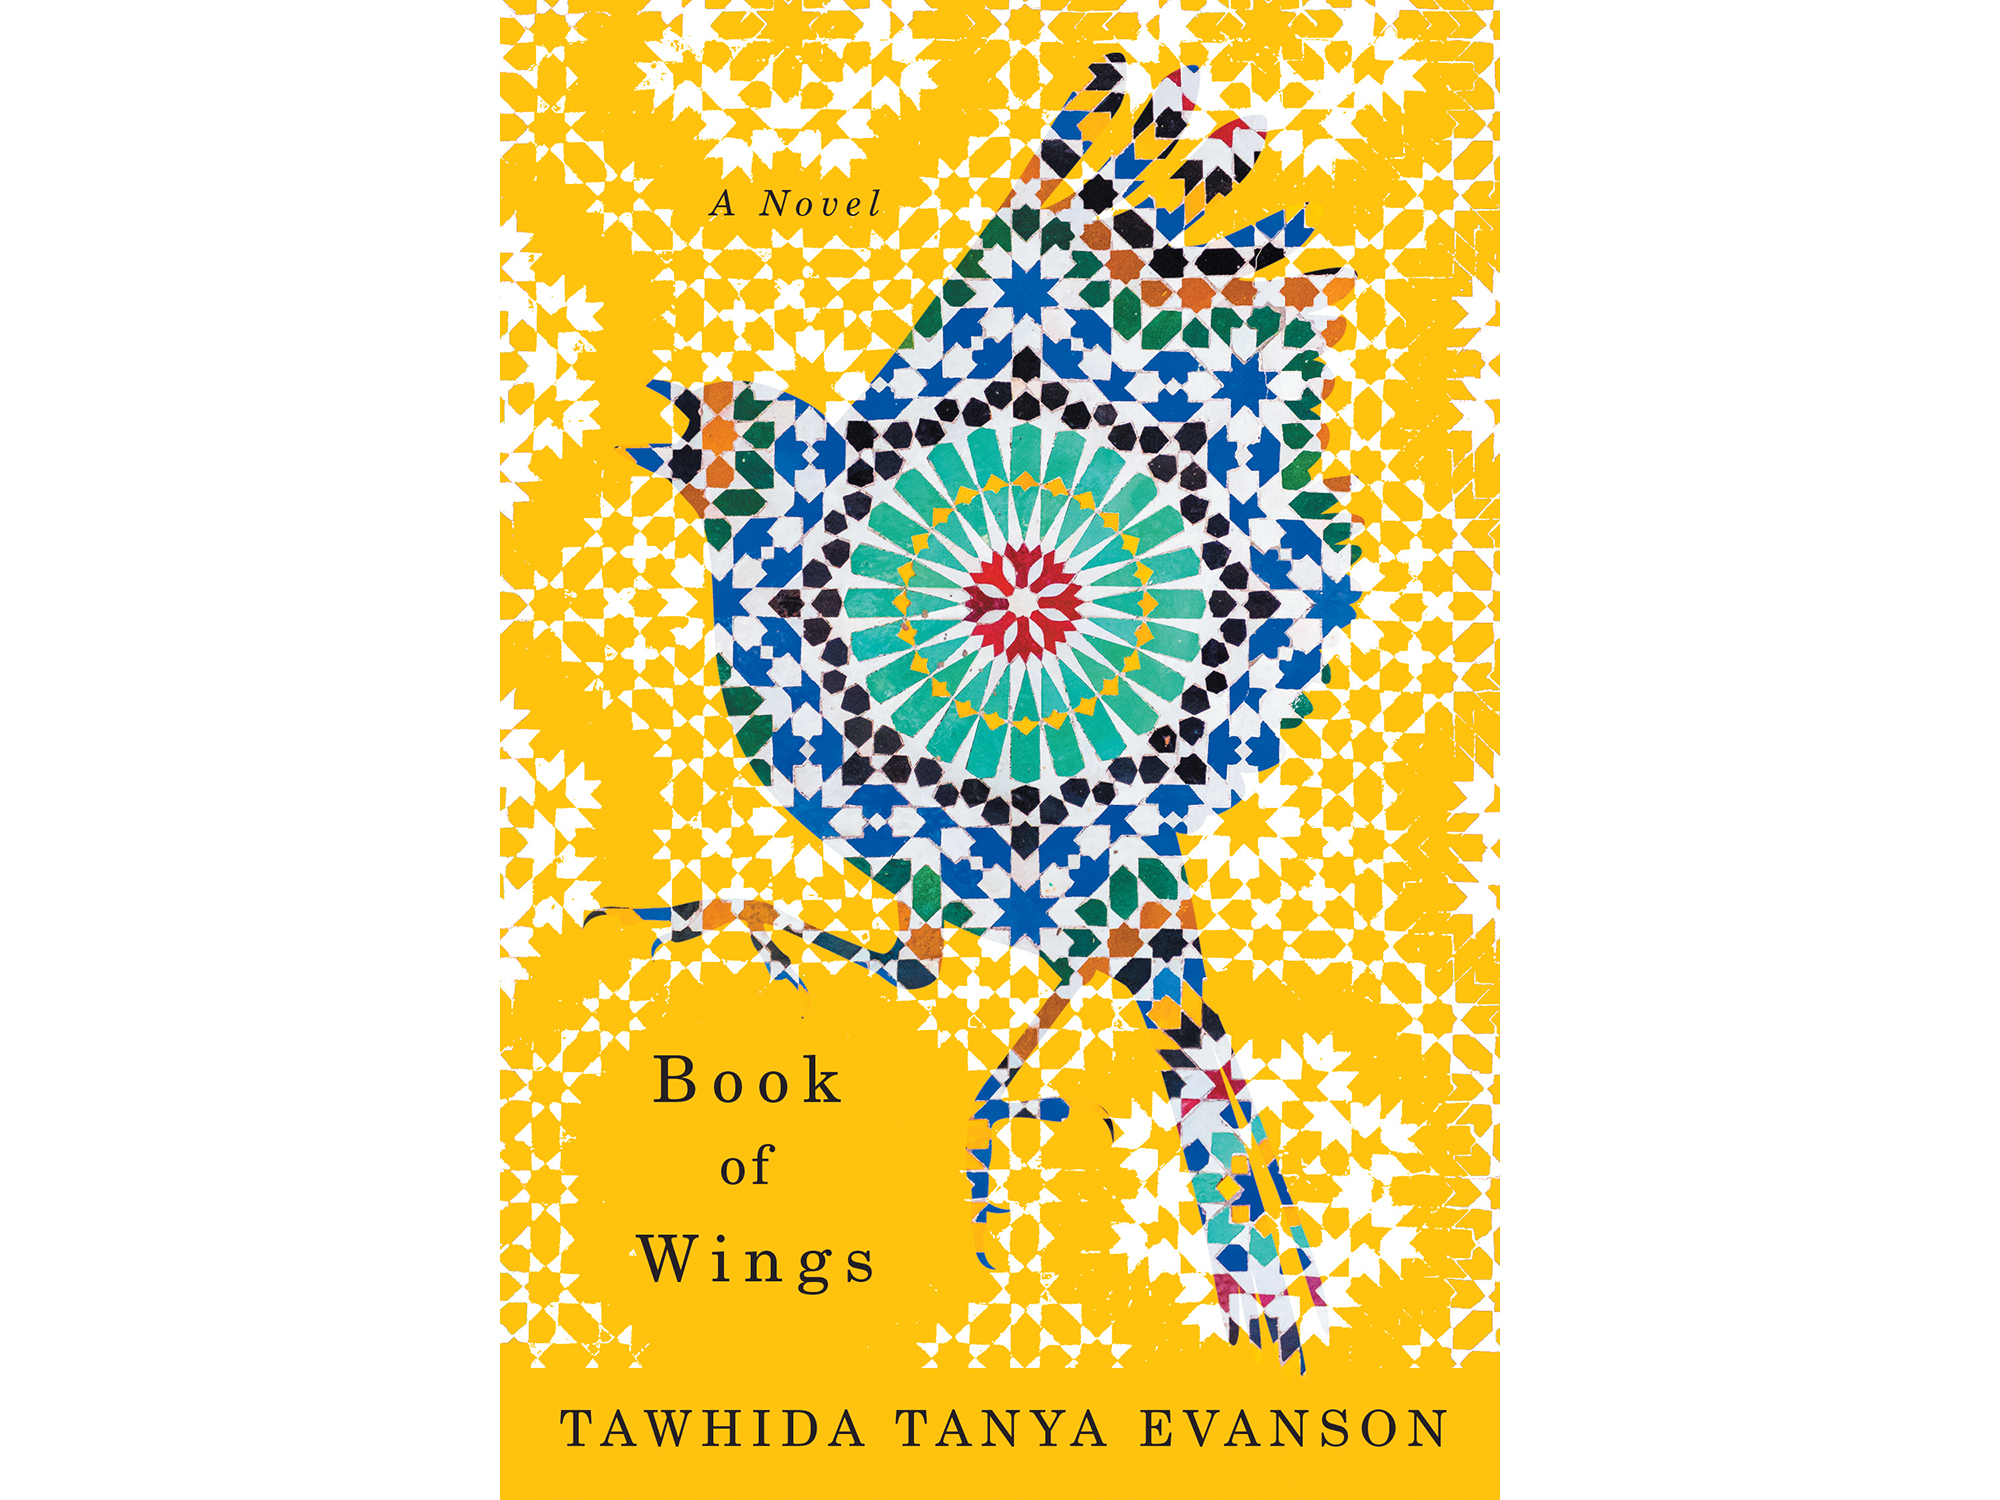 The cover of Tawhida Tanya Evanson's Book of Wings